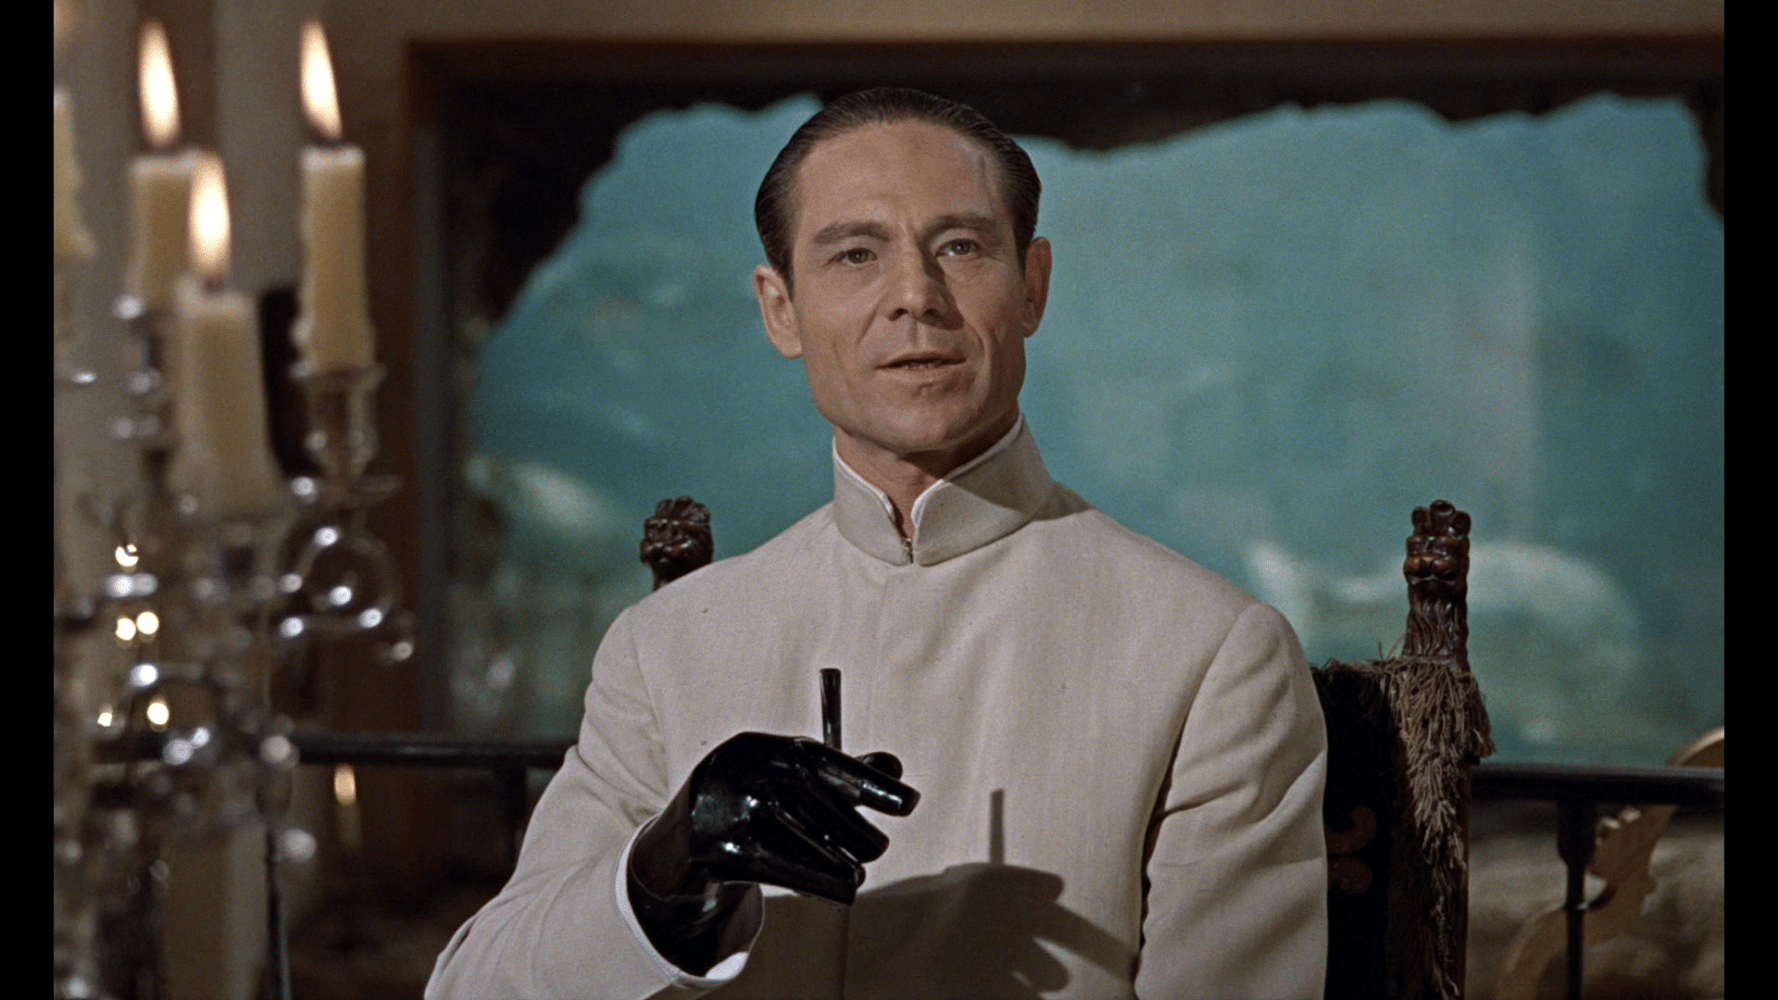 James Bond, Dr. No, Sean Connery, 007, Joseph Wiseman